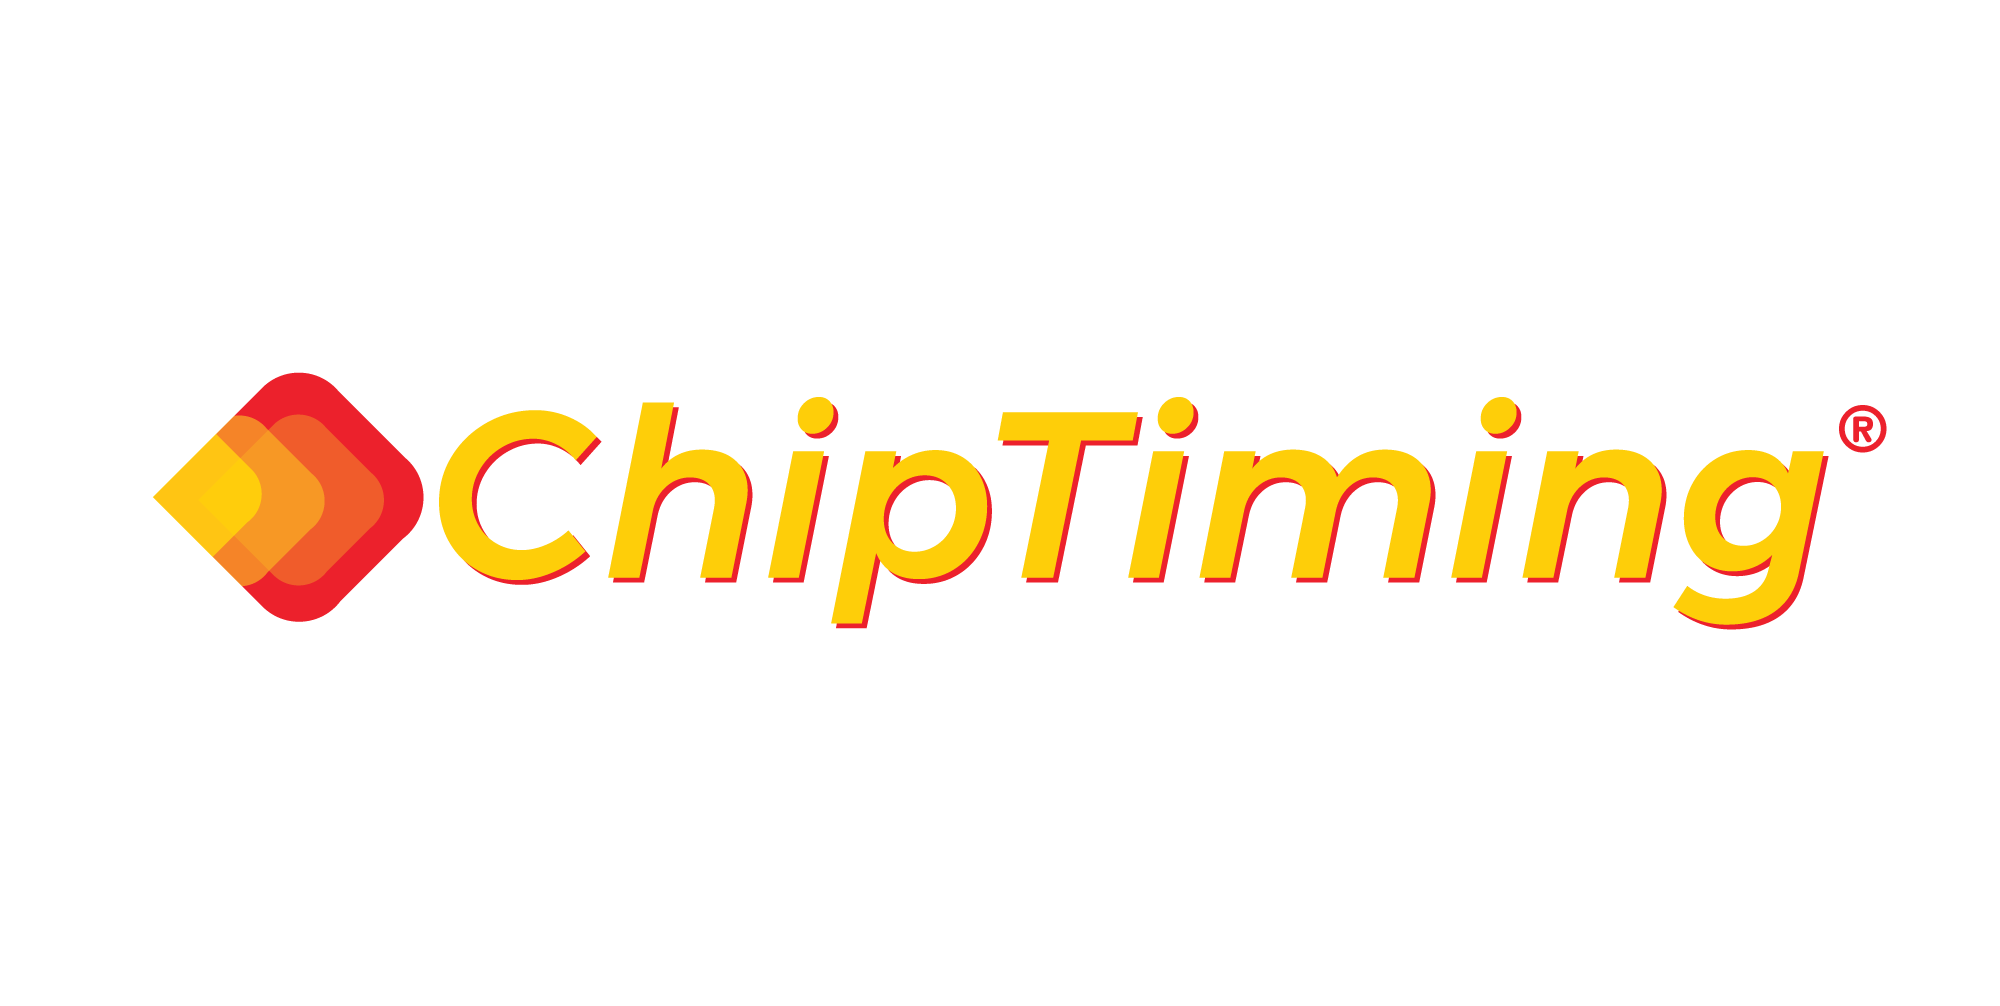 ChipTiming